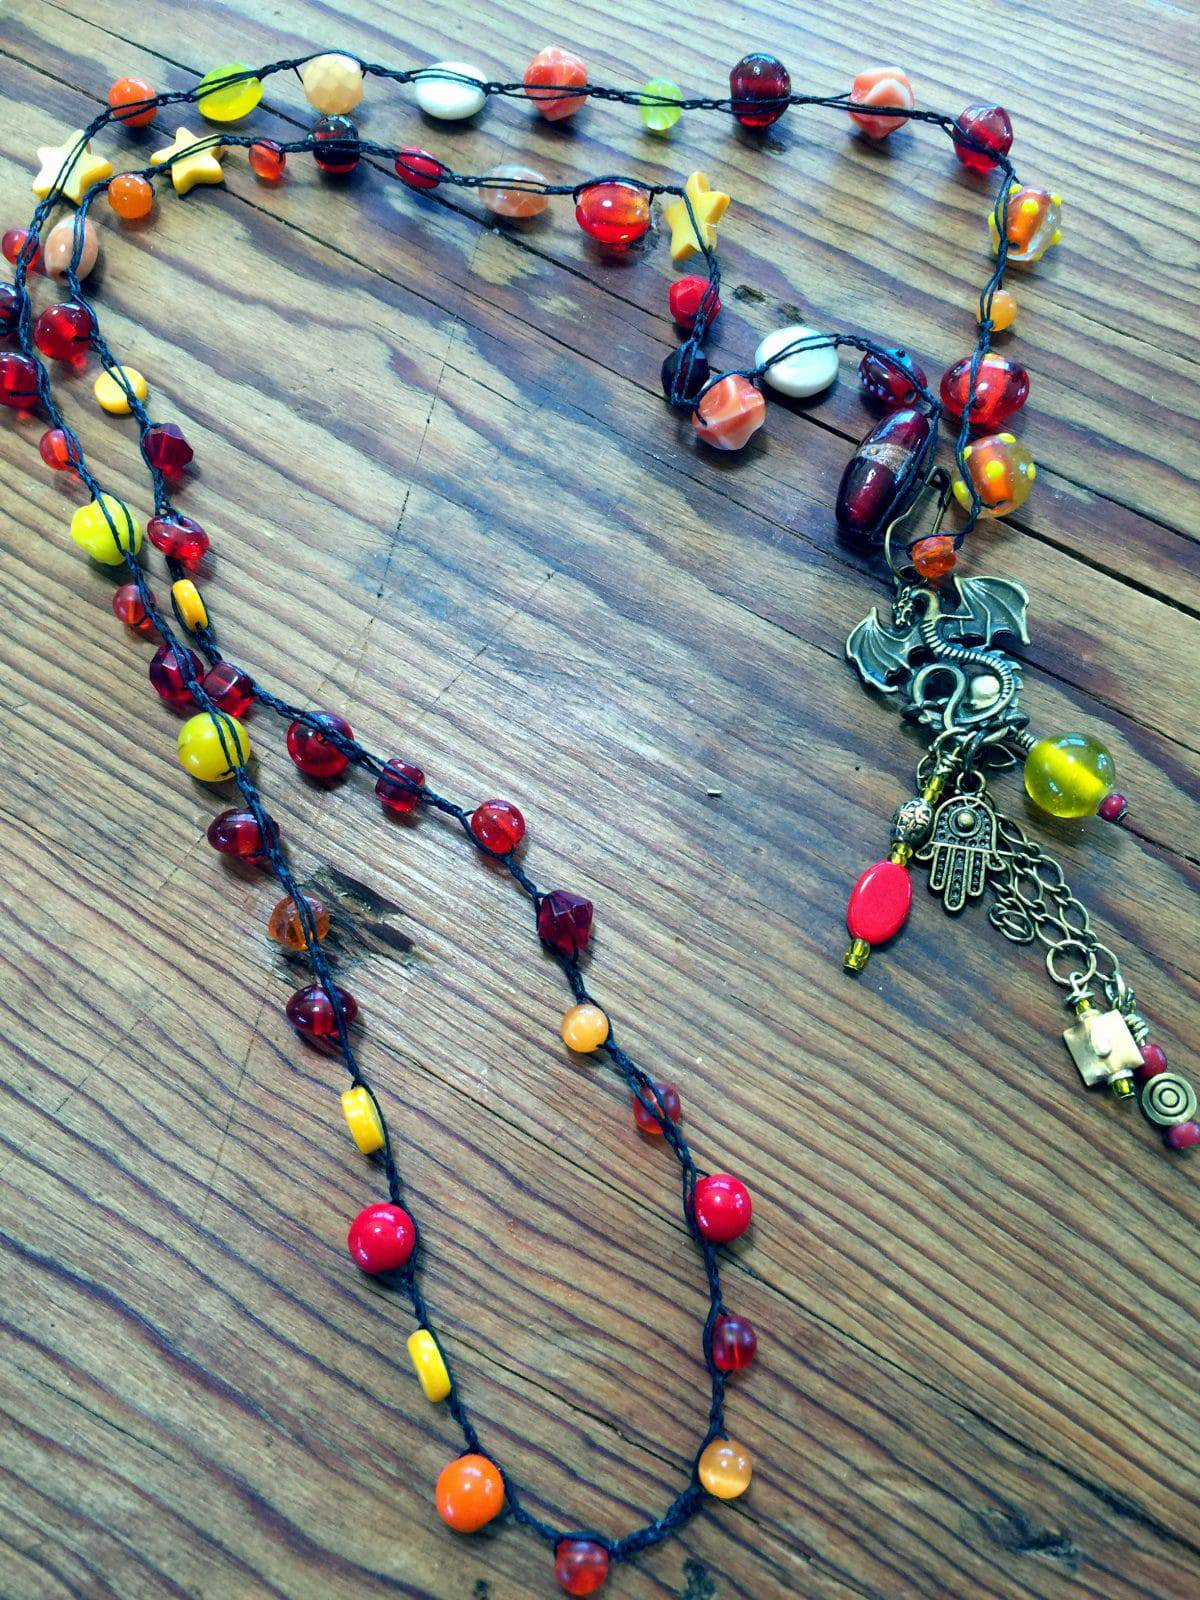 This bead crochet necklace reflects happy charms.